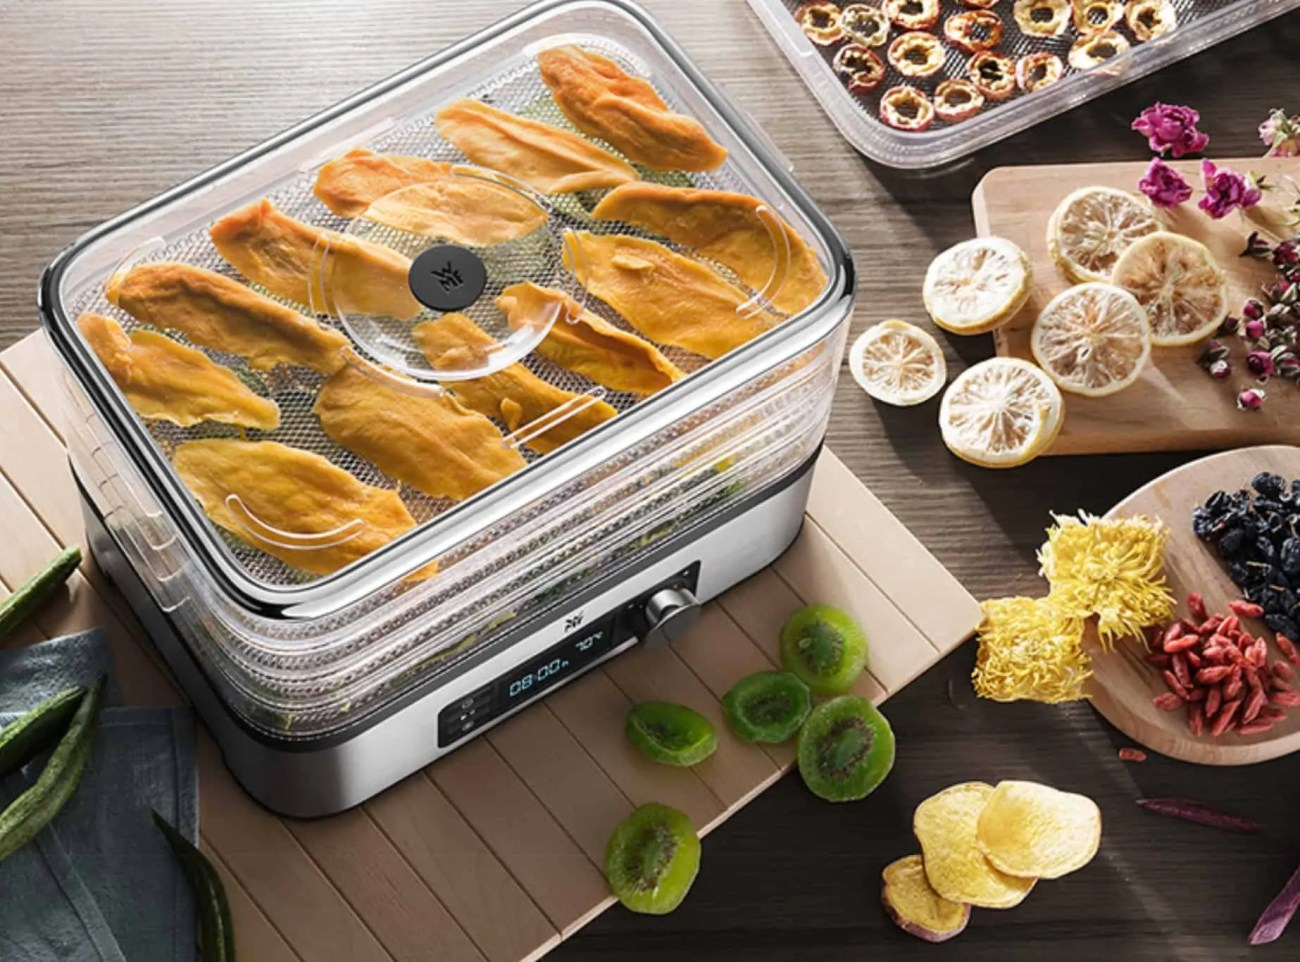 How to Choose the Best Food Dehydrators